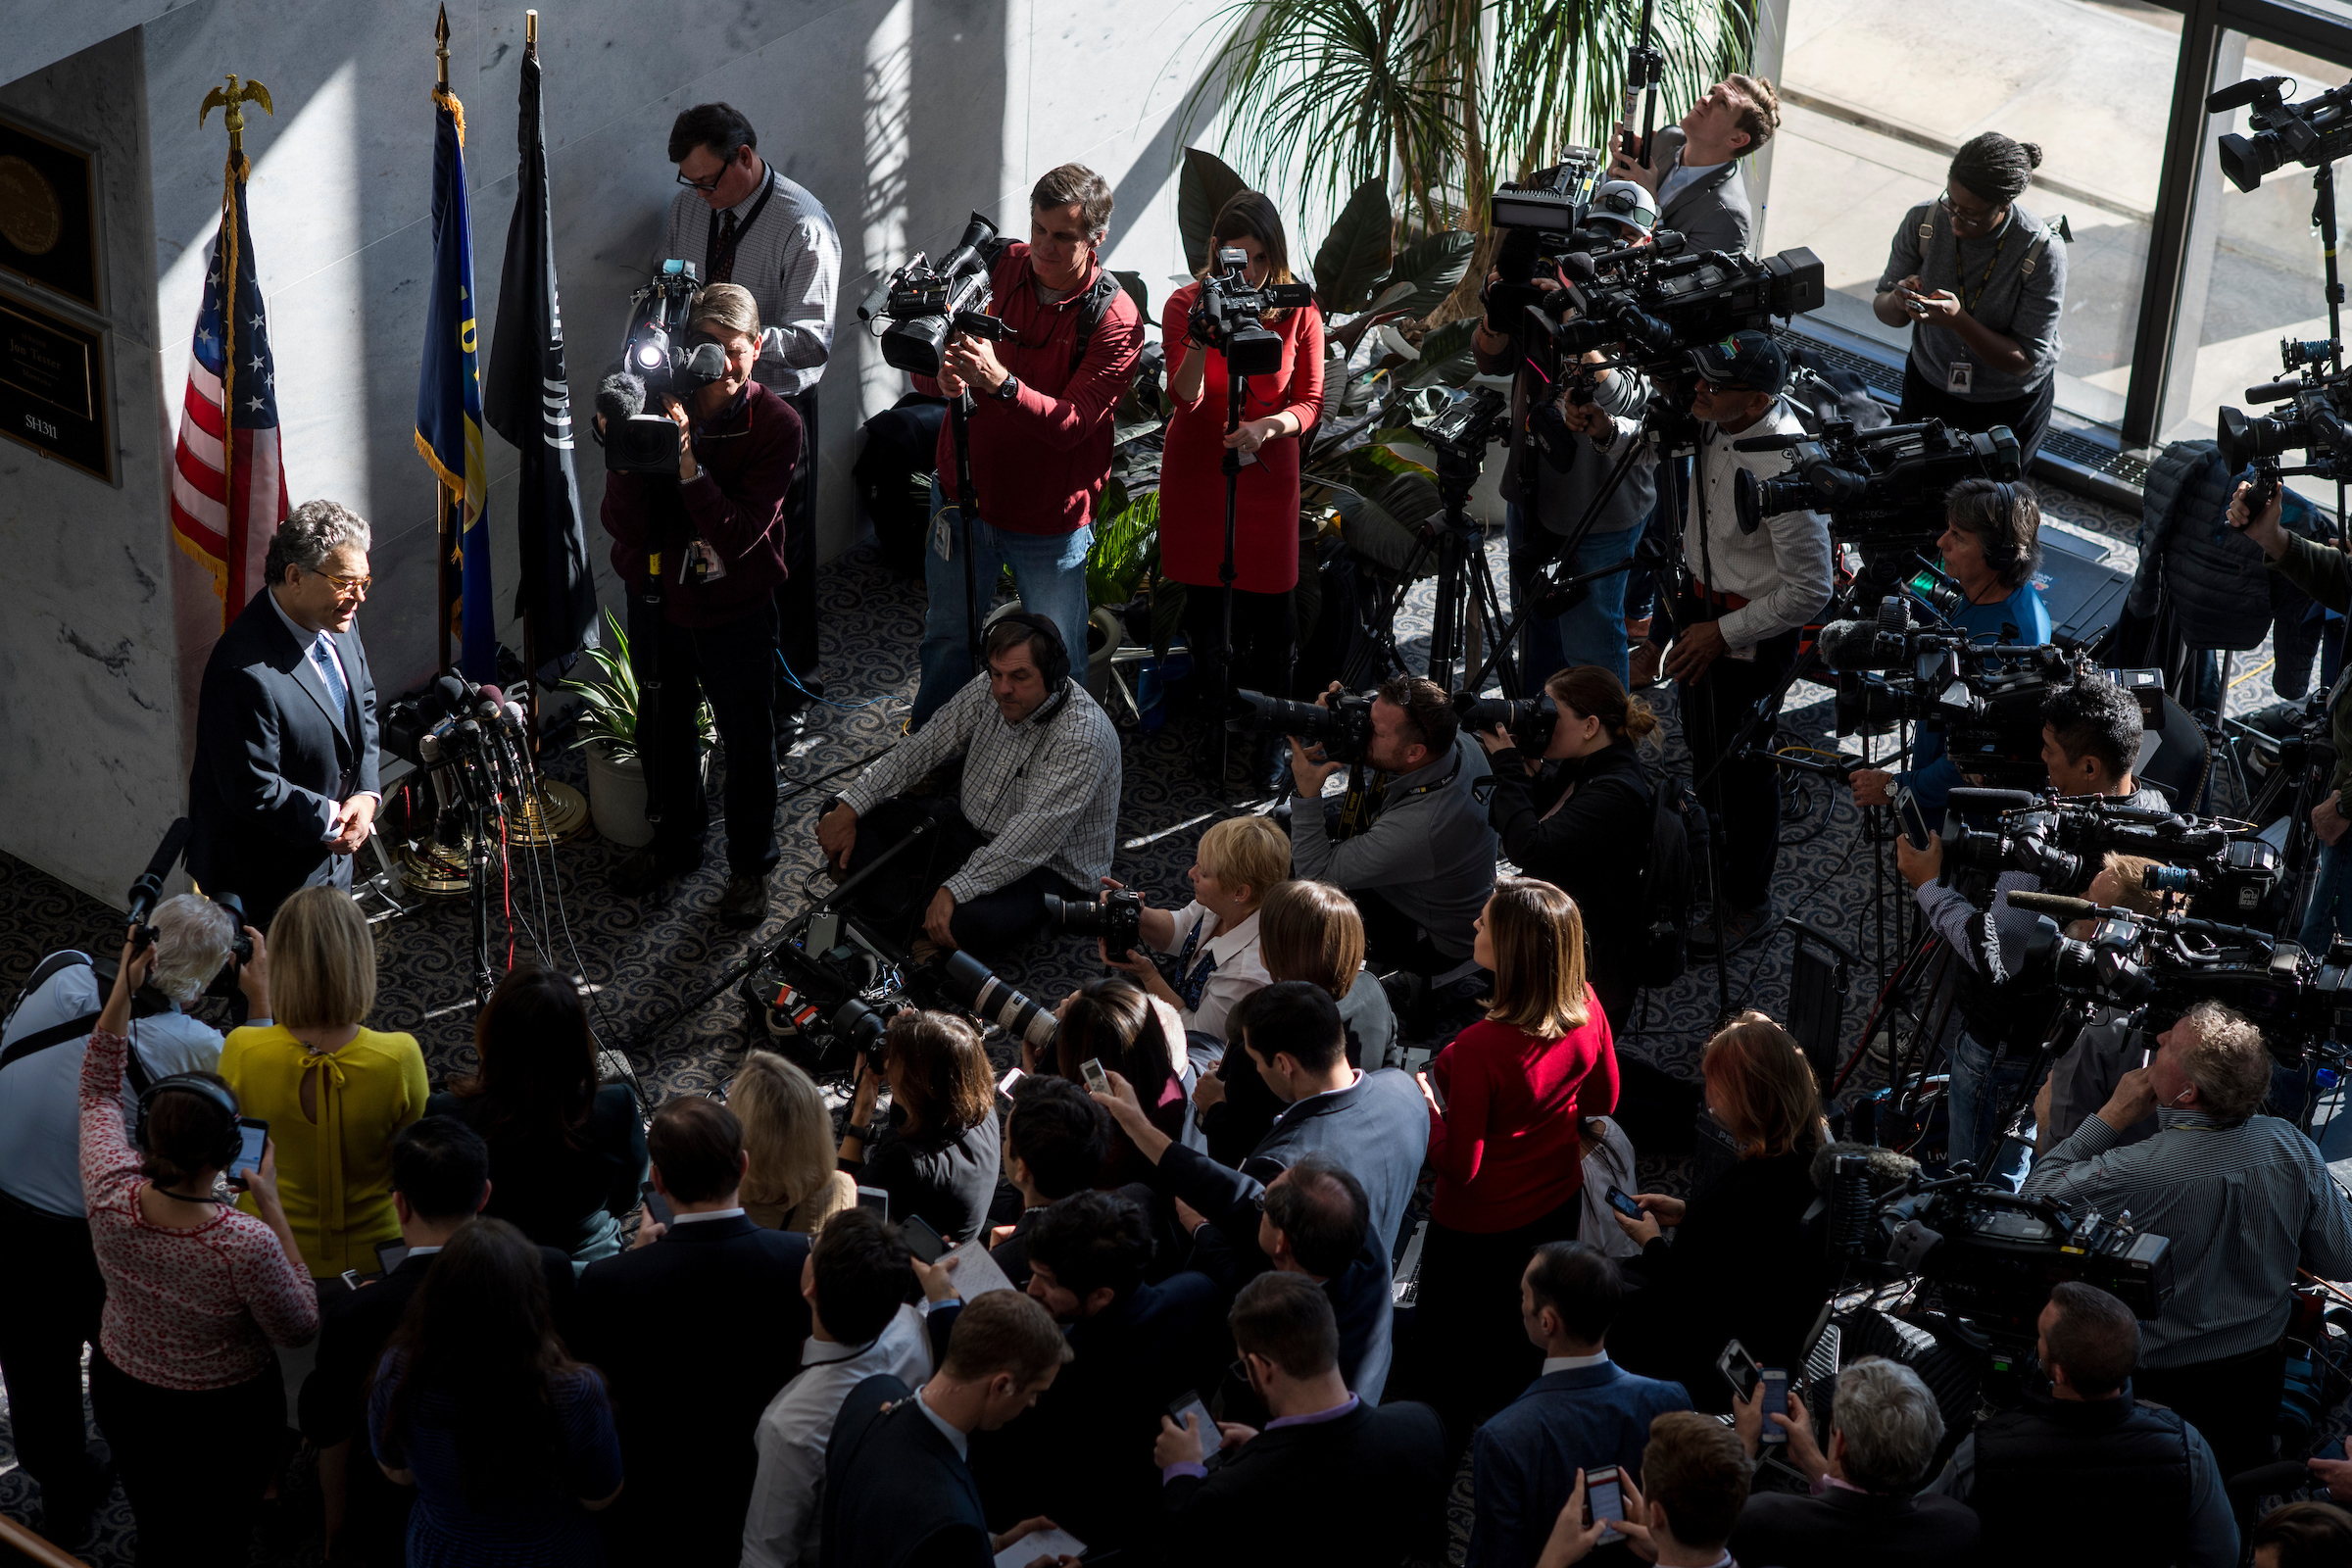 en. Al Franken, D-Minn., speaks to the gathered media outside his office in the Hart Senate Office Building about his alleged sexual misconduct on Monday, Nov. 27, 2017. (Photo By Bill Clark/CQ Roll Call)